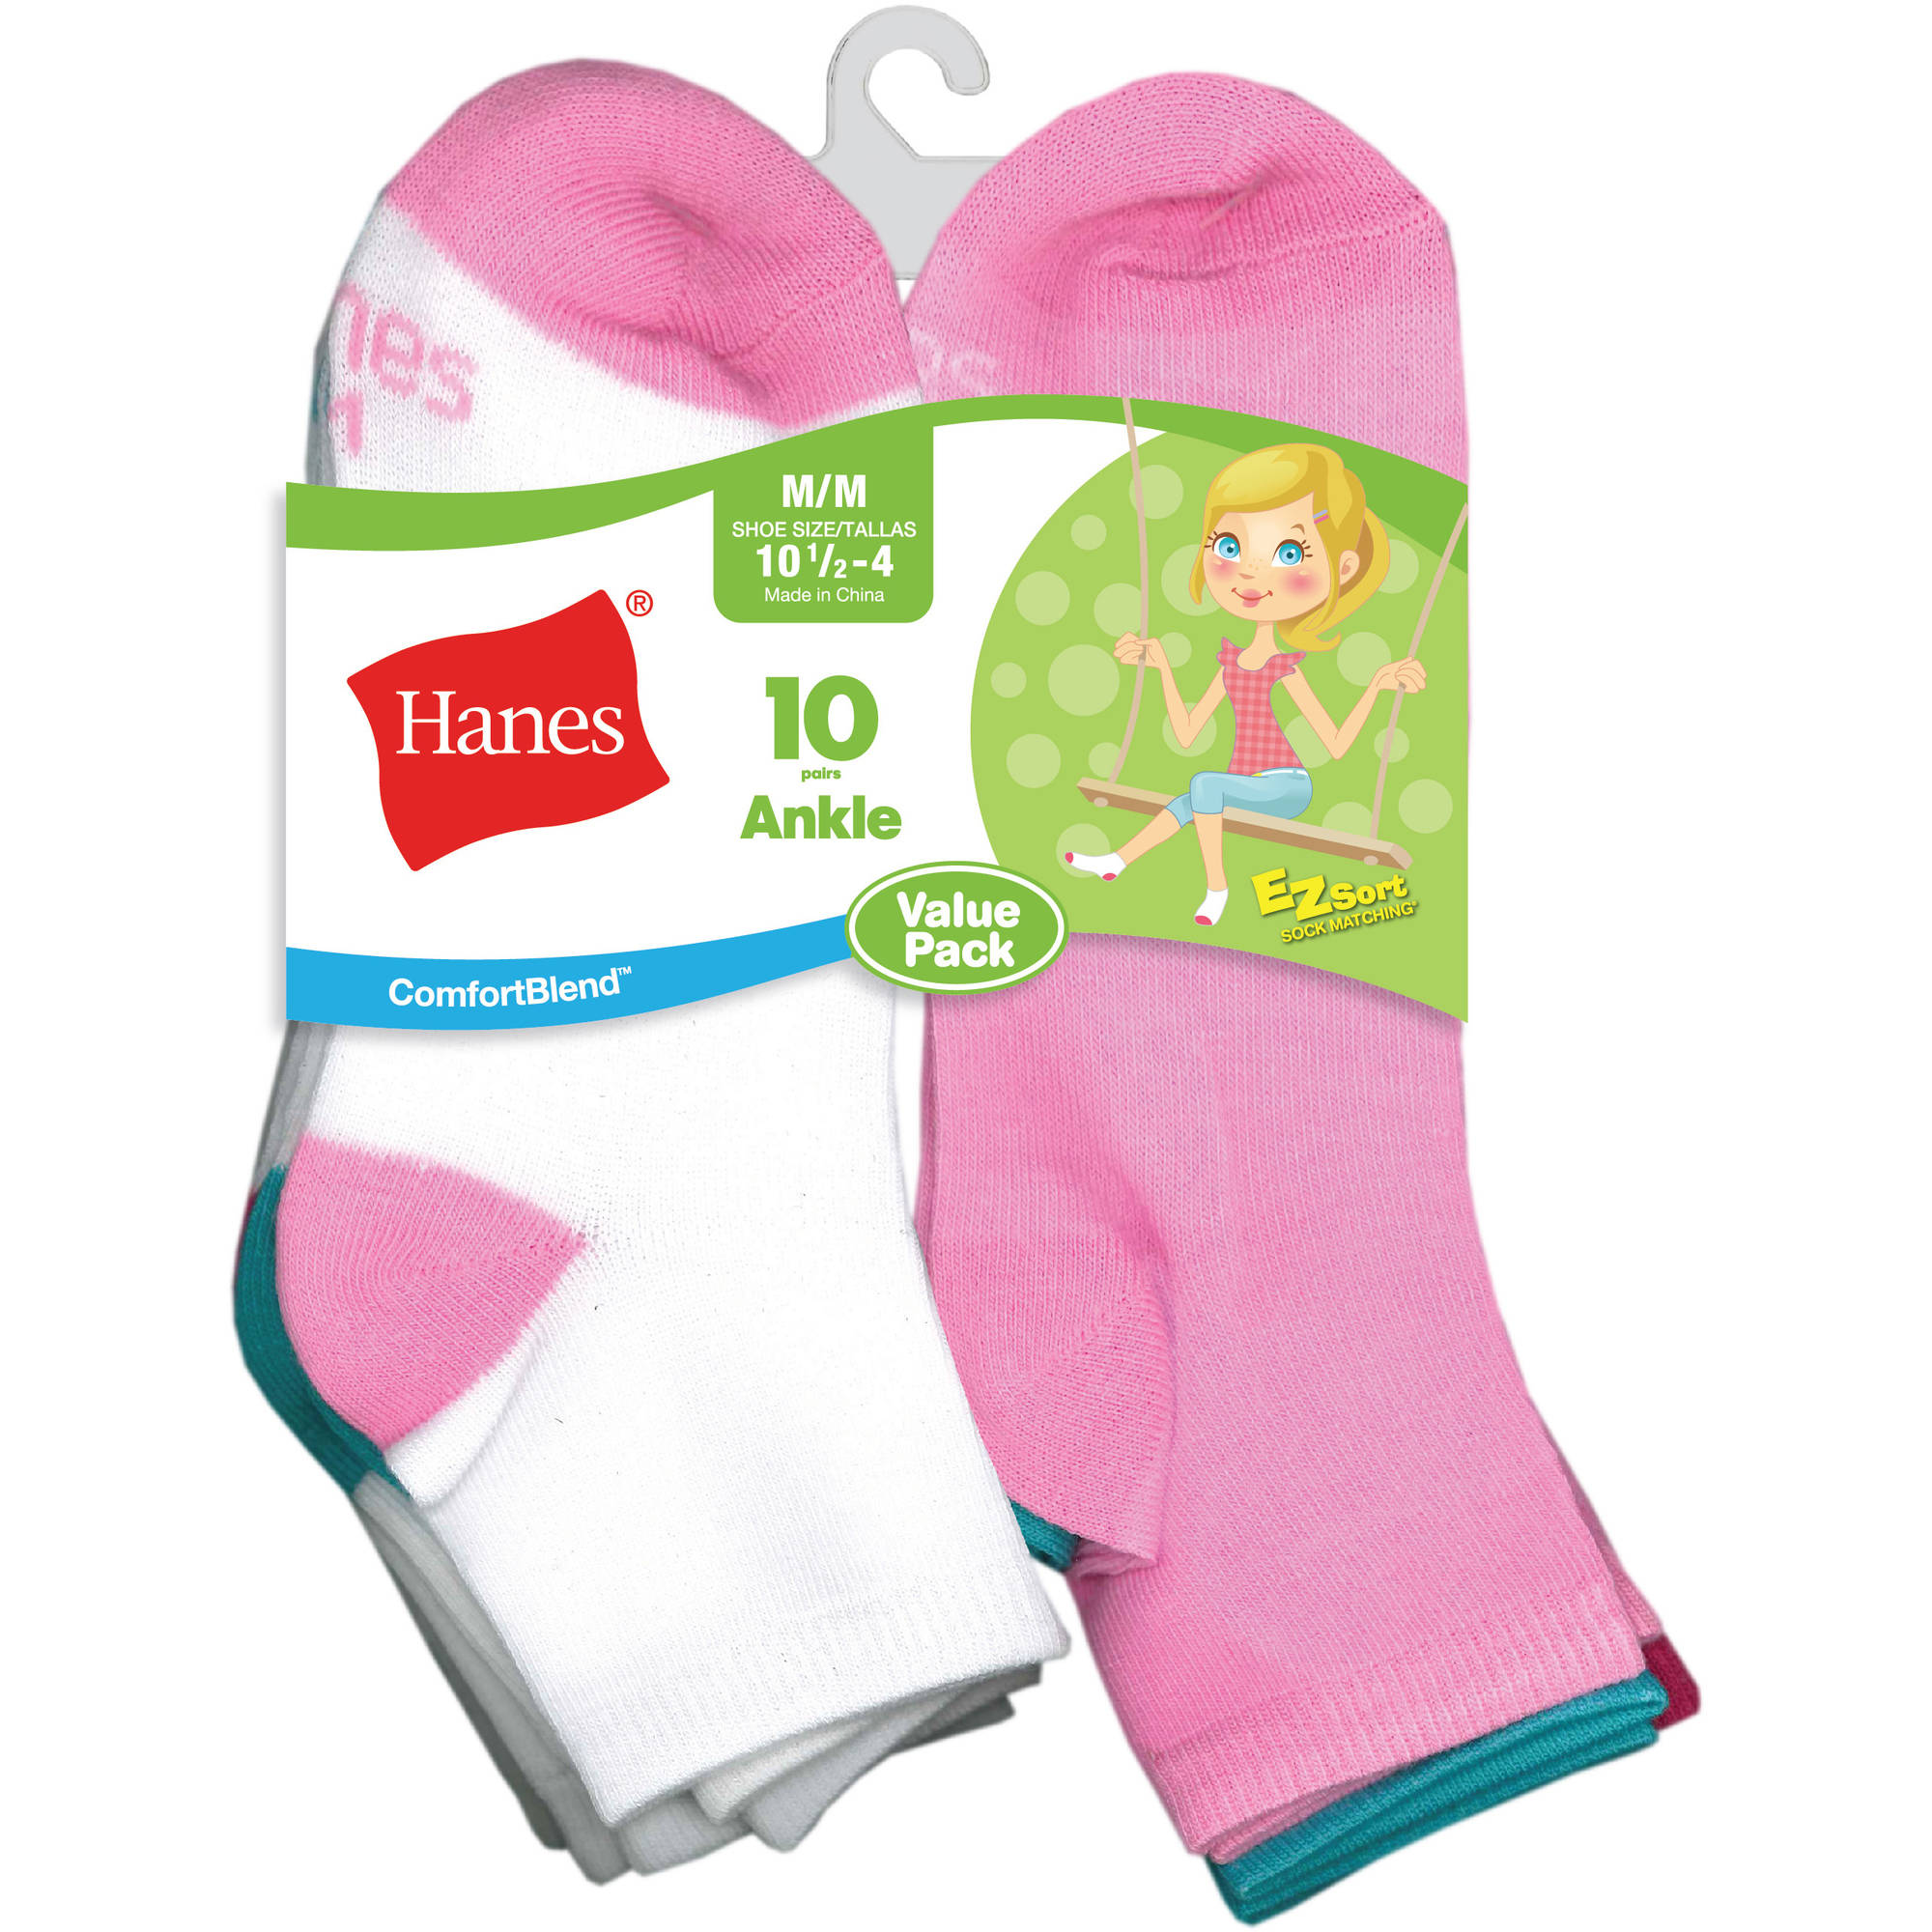 Hanes Girls Ankle Socks - 10 Pack